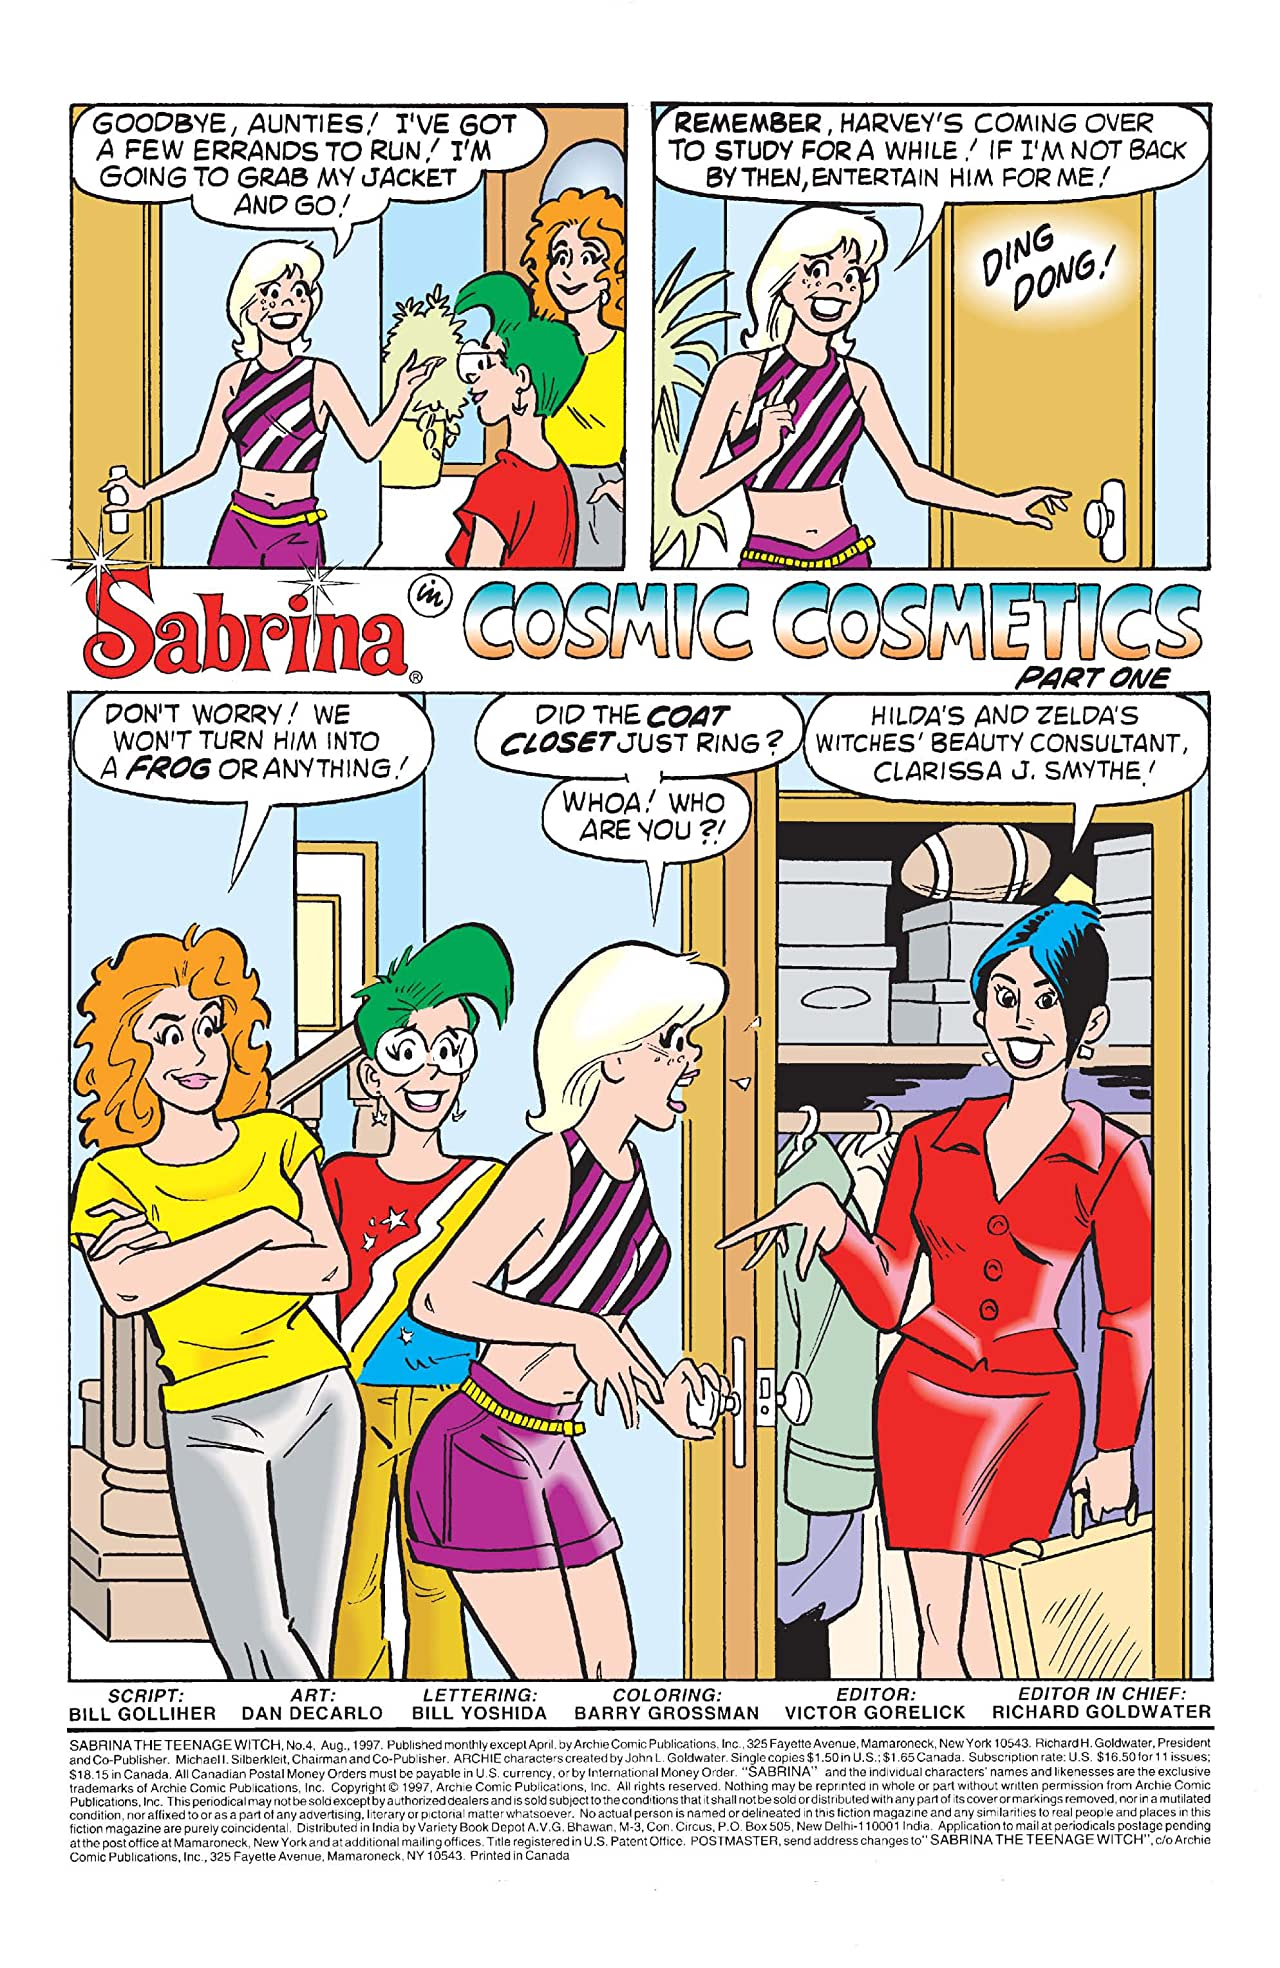 Sabrina the Teenage Witch #4